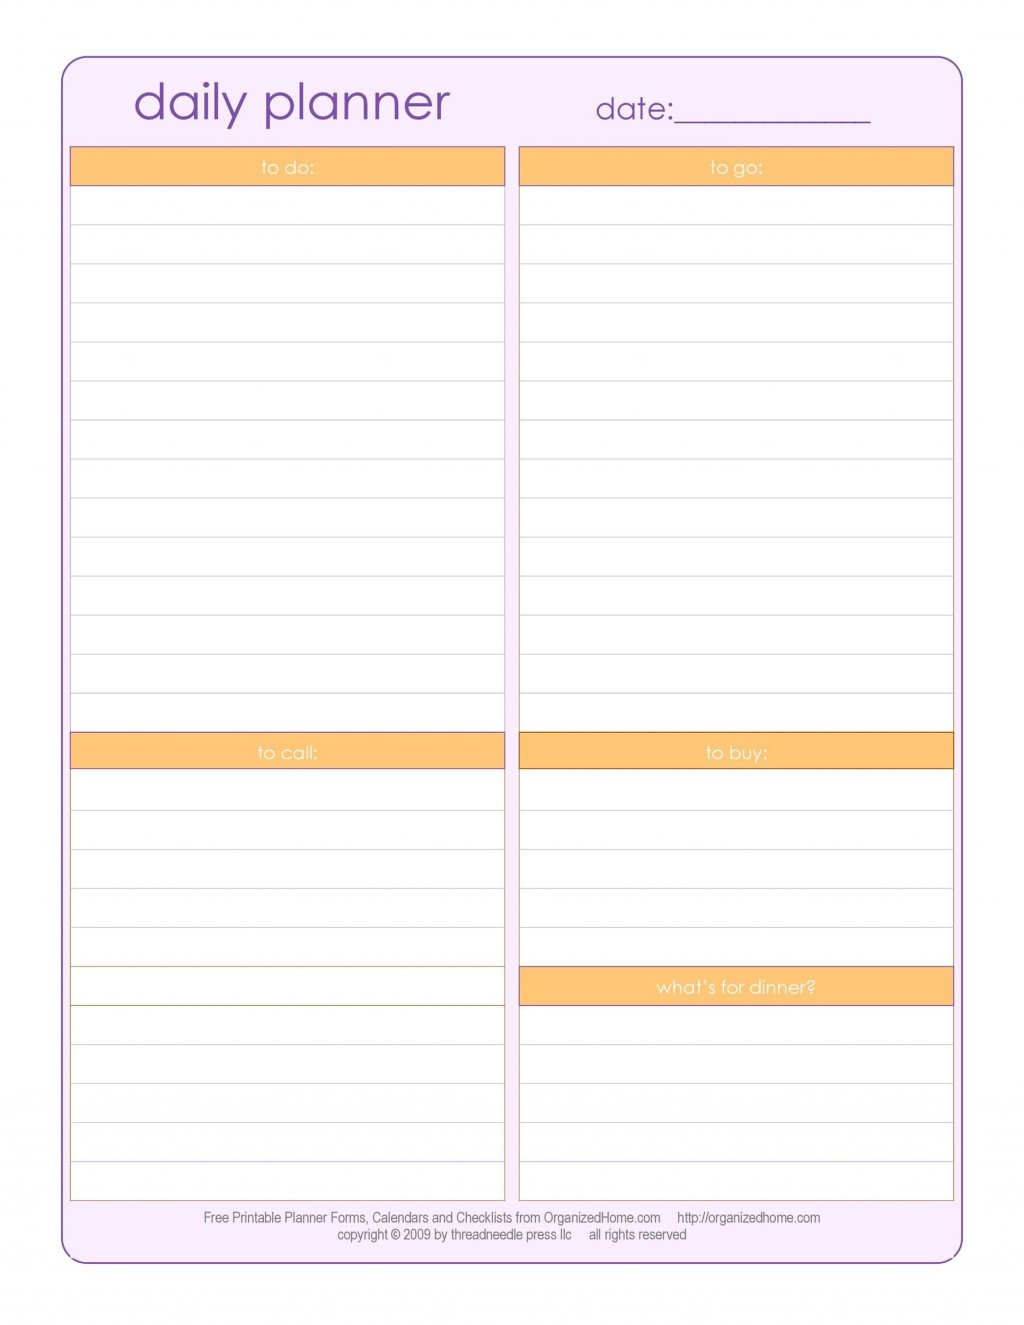 004 Stupendou Daily Schedule Template Printable Picture Large